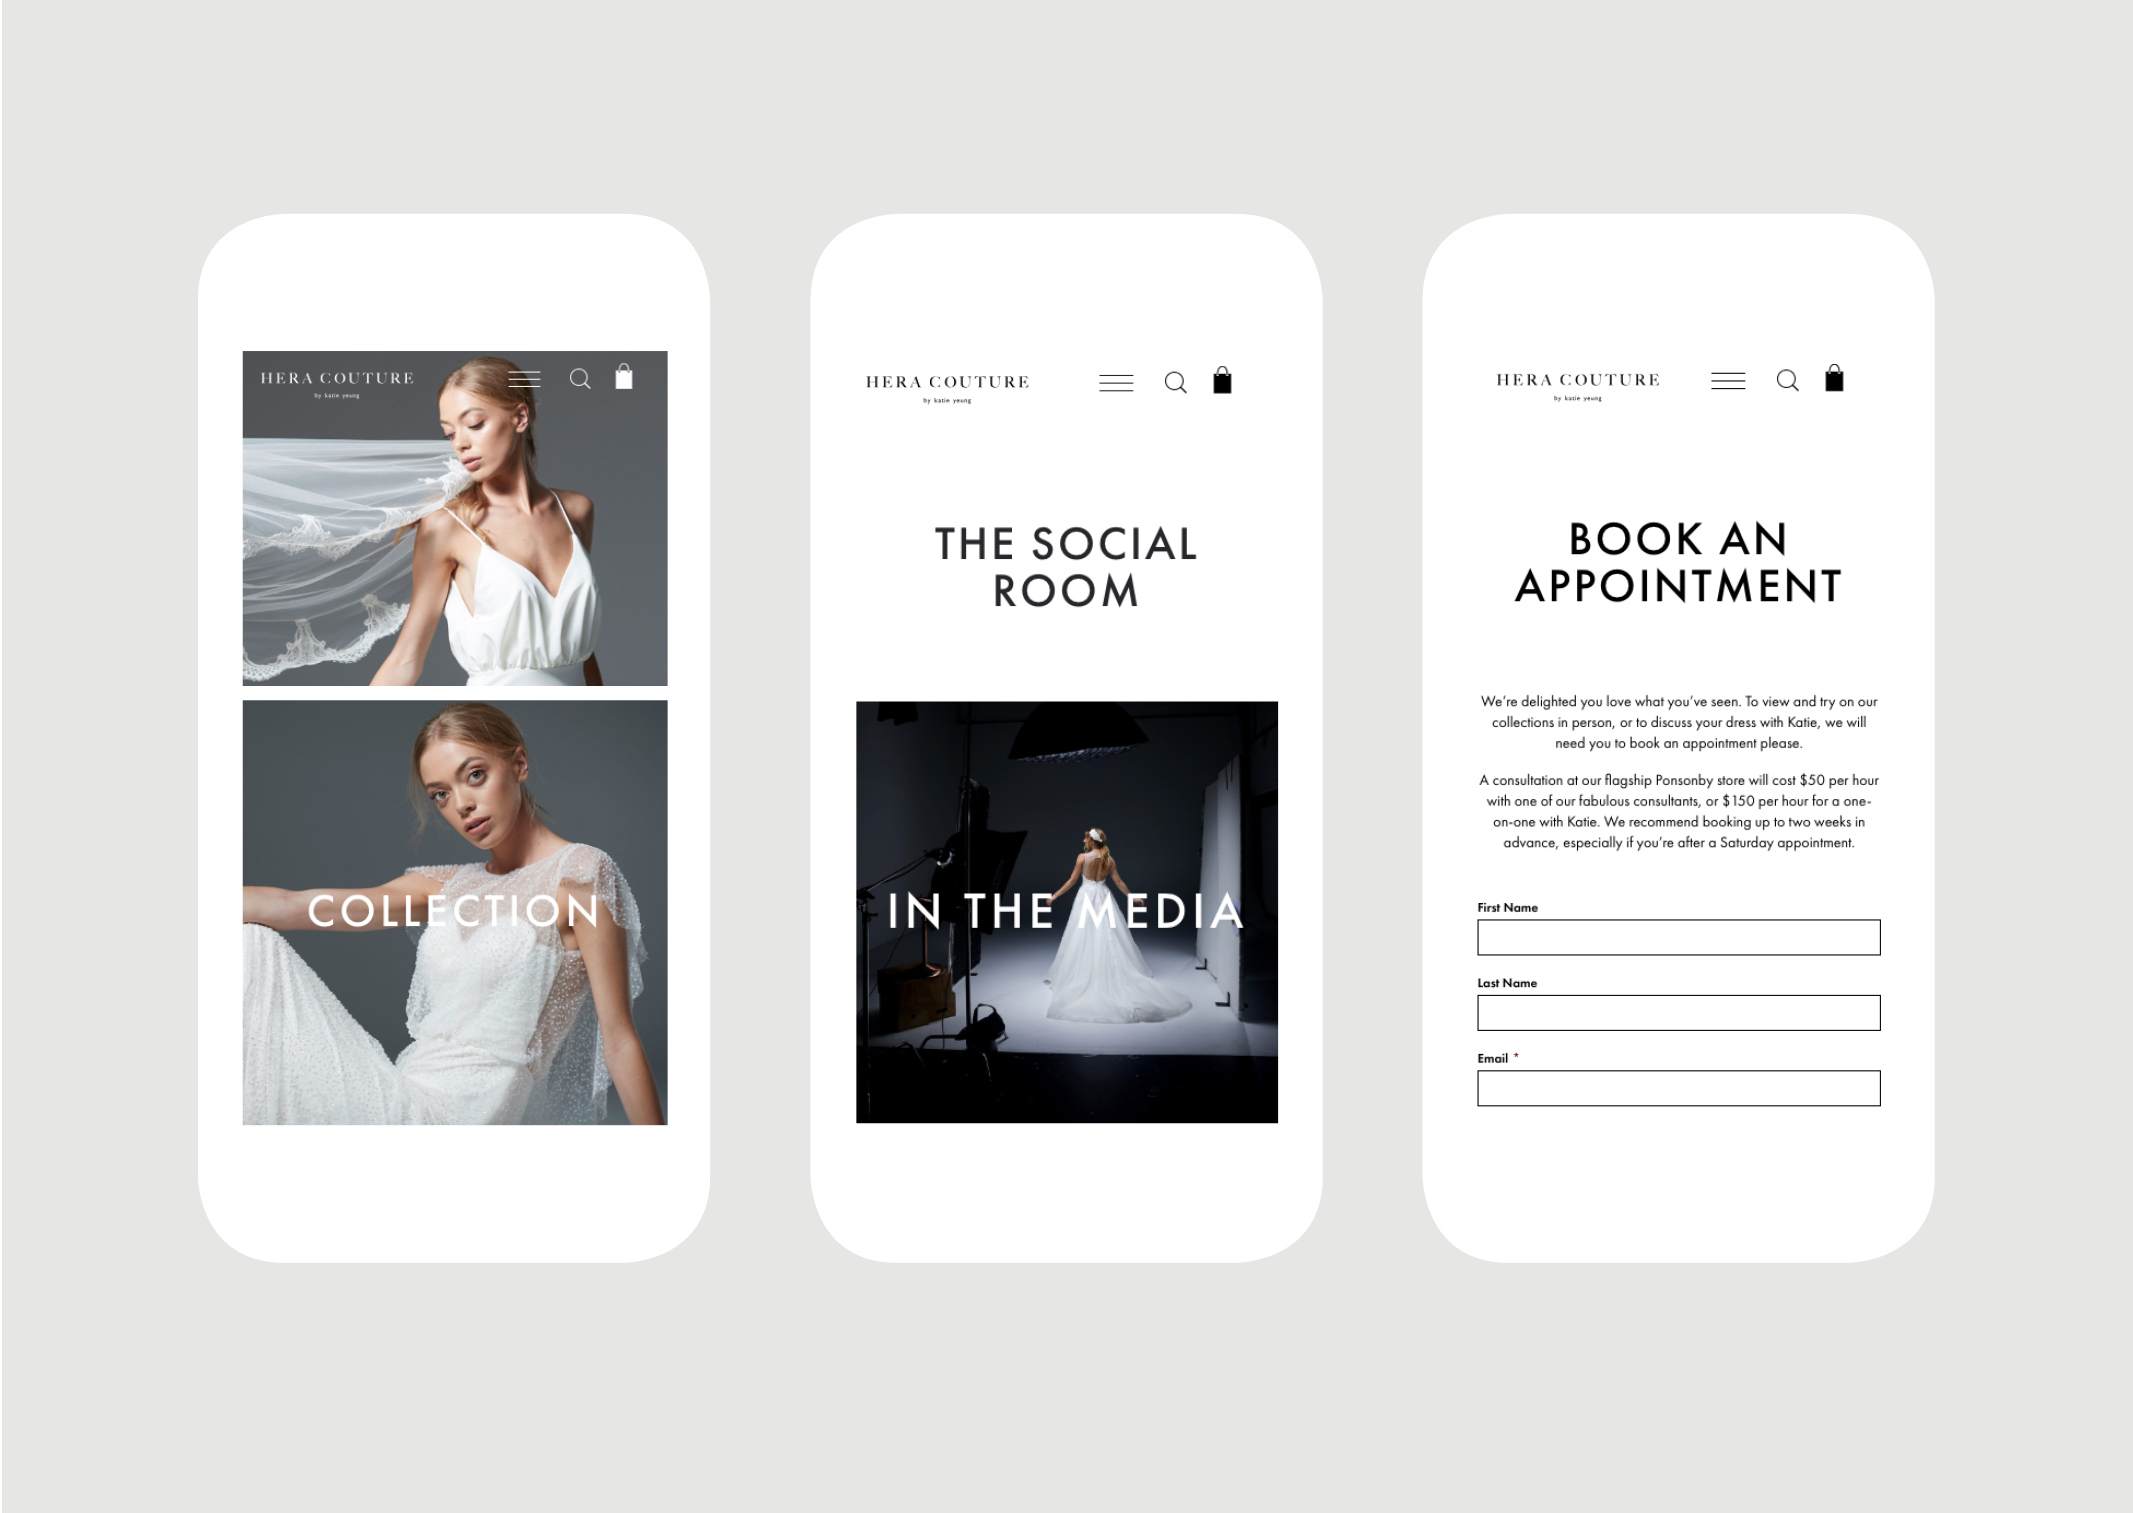 Hera Couture website – Key screens on mobile view